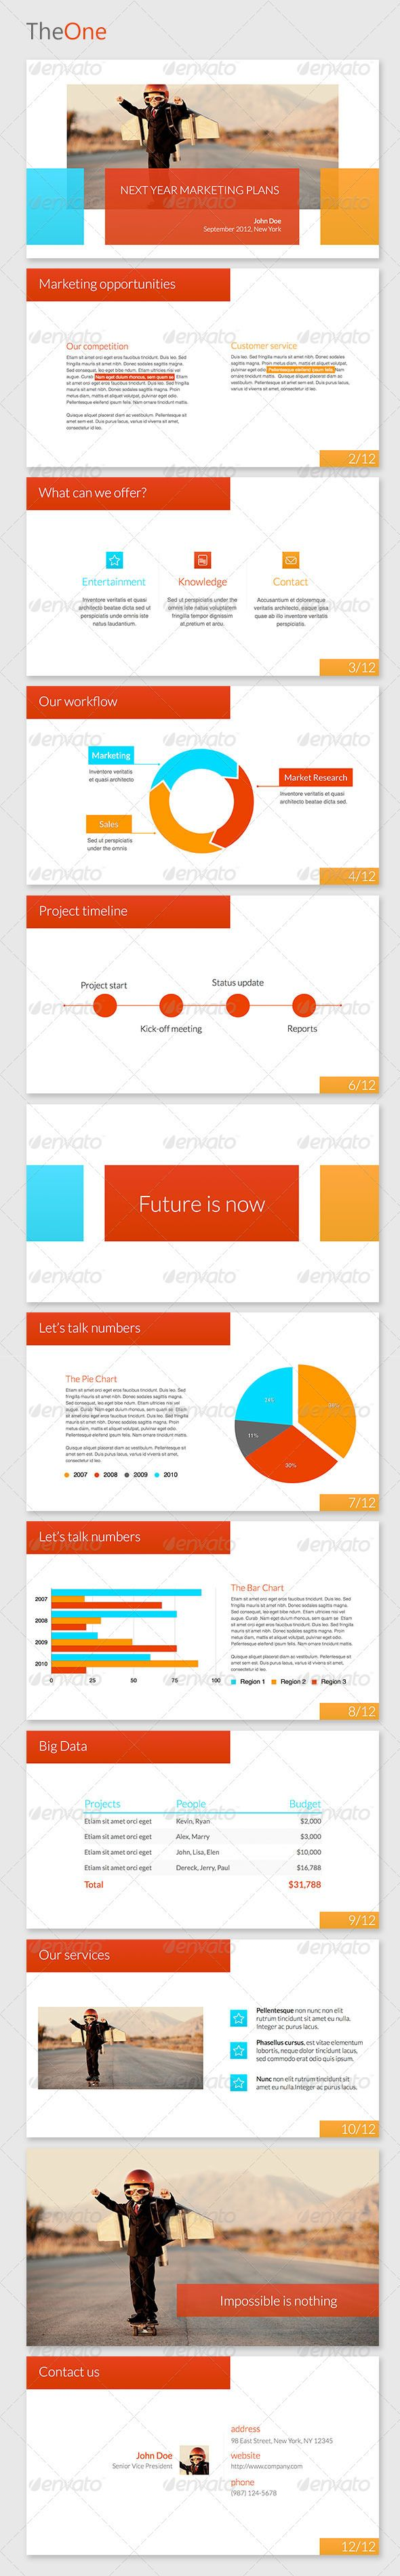 TheOne Keynote Template  #GraphicRiver           	 Clean, elegant and modern business presentation template for keynote. Now you can present your business case in a non conventional way and modify this template to your needs.  	 Fonts:  	 	 Helvetica – system font 		 Lato – download for free from:  Created: 9October12 PixelDimensions: 1920x1080 PresentationFilesIncluded: KeynoteKEY Tags: business #corporate #creative #keynote #marketing #modern #presentation #professional #sales #template